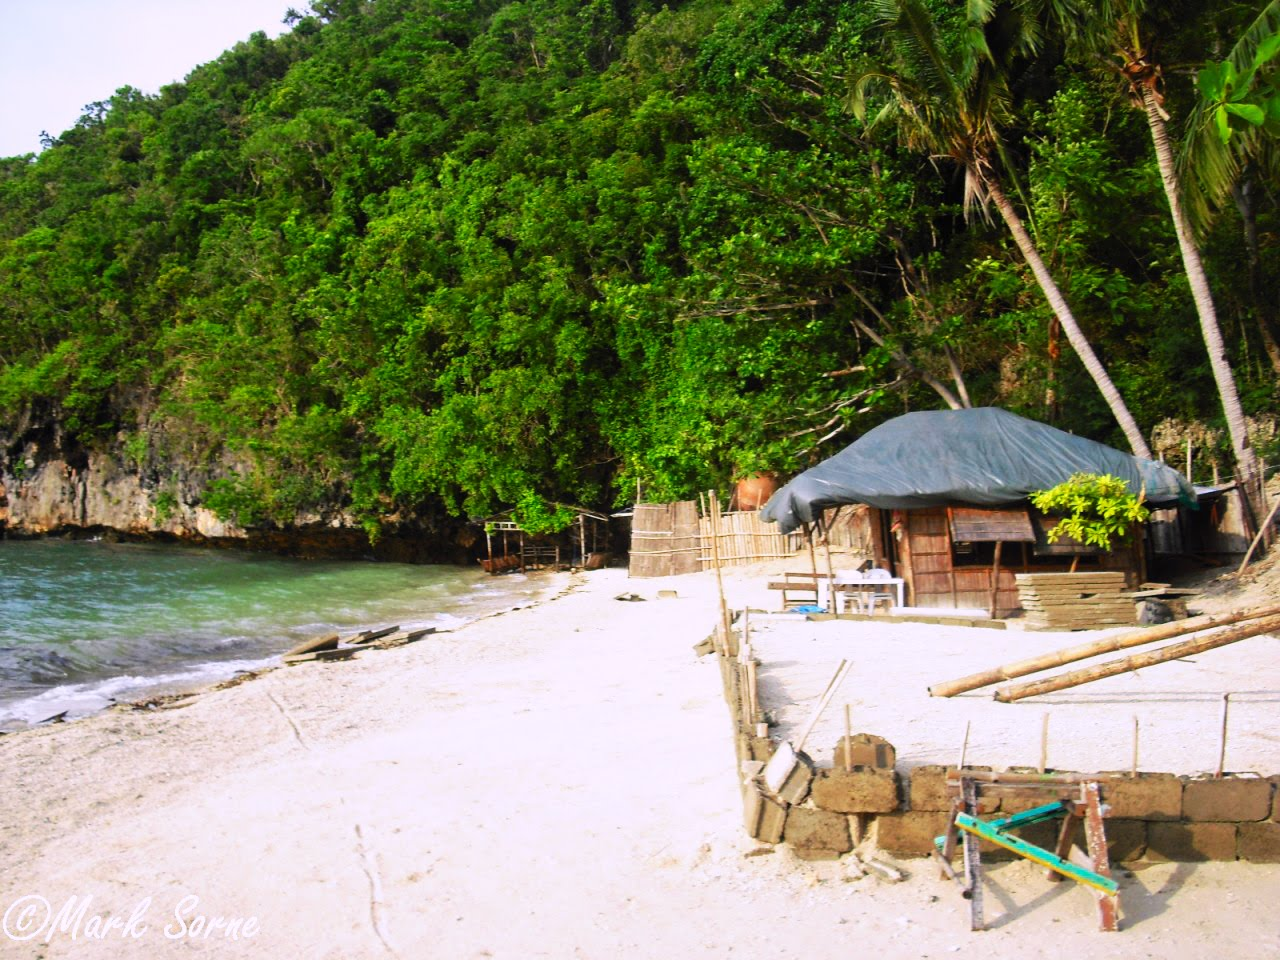 Hundred Islands, bwin banküberweisung Philippines | Places I've Visited | Pinterest